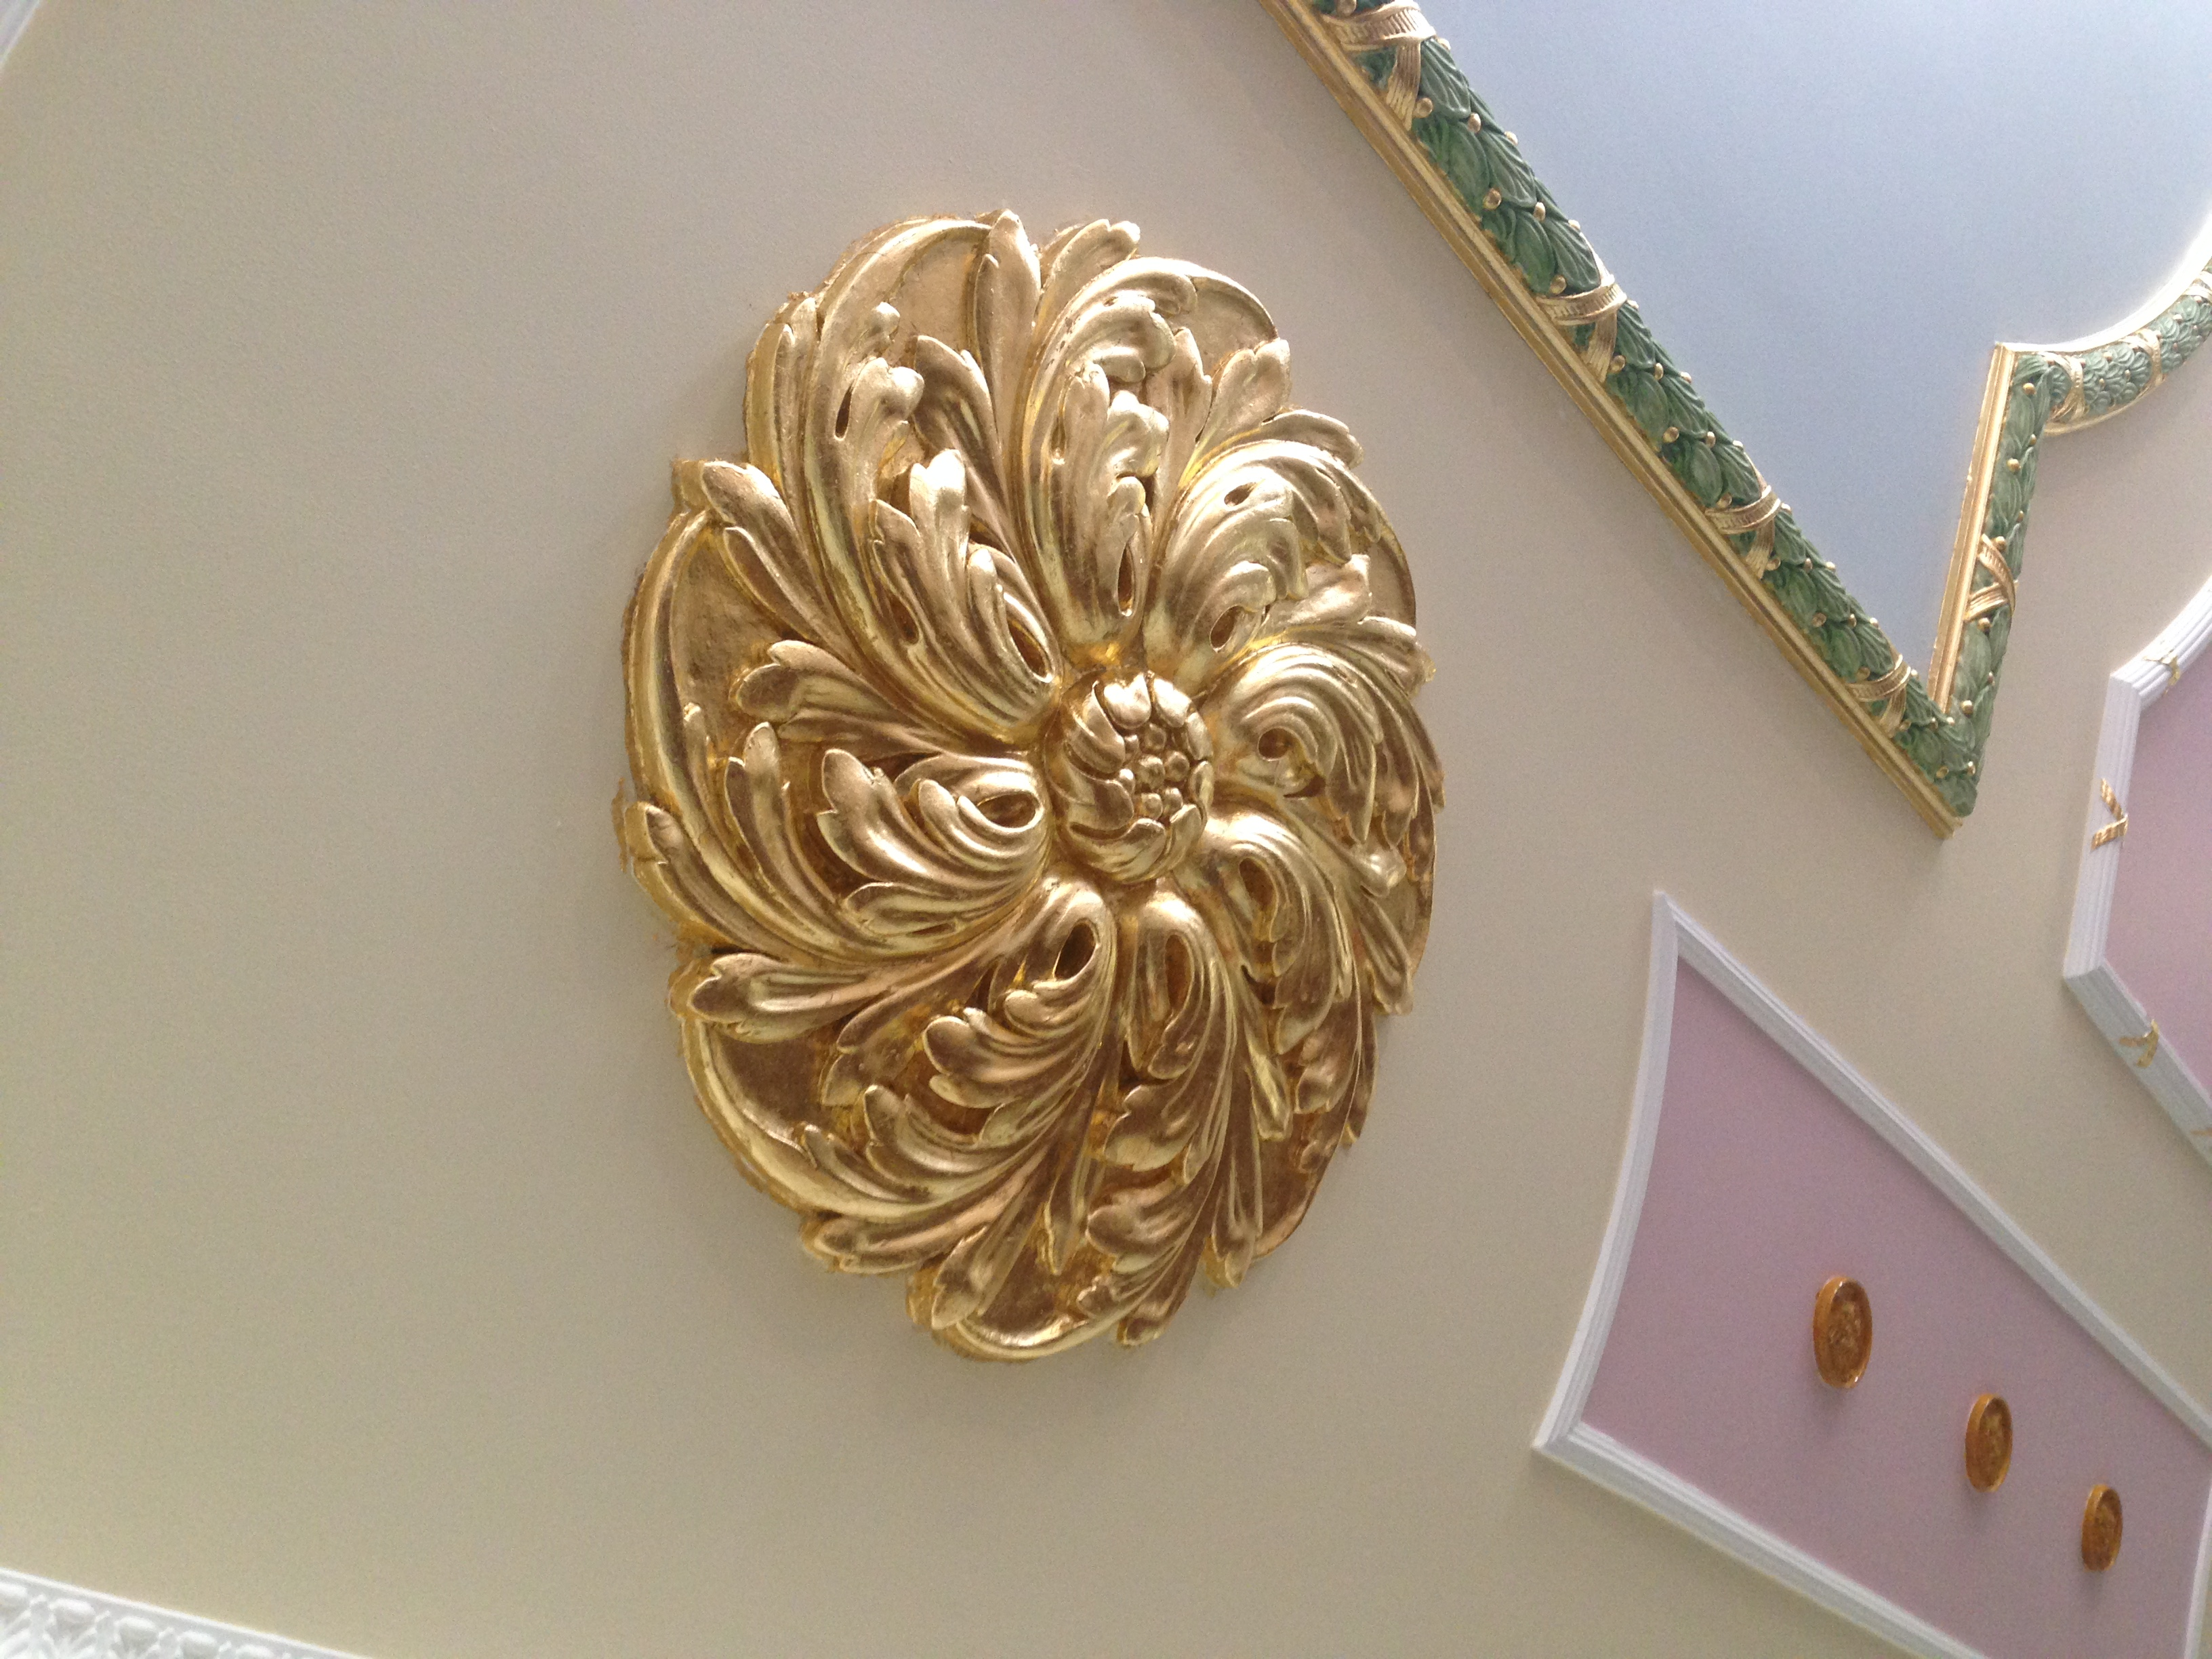 Gilded Ceiling Rose